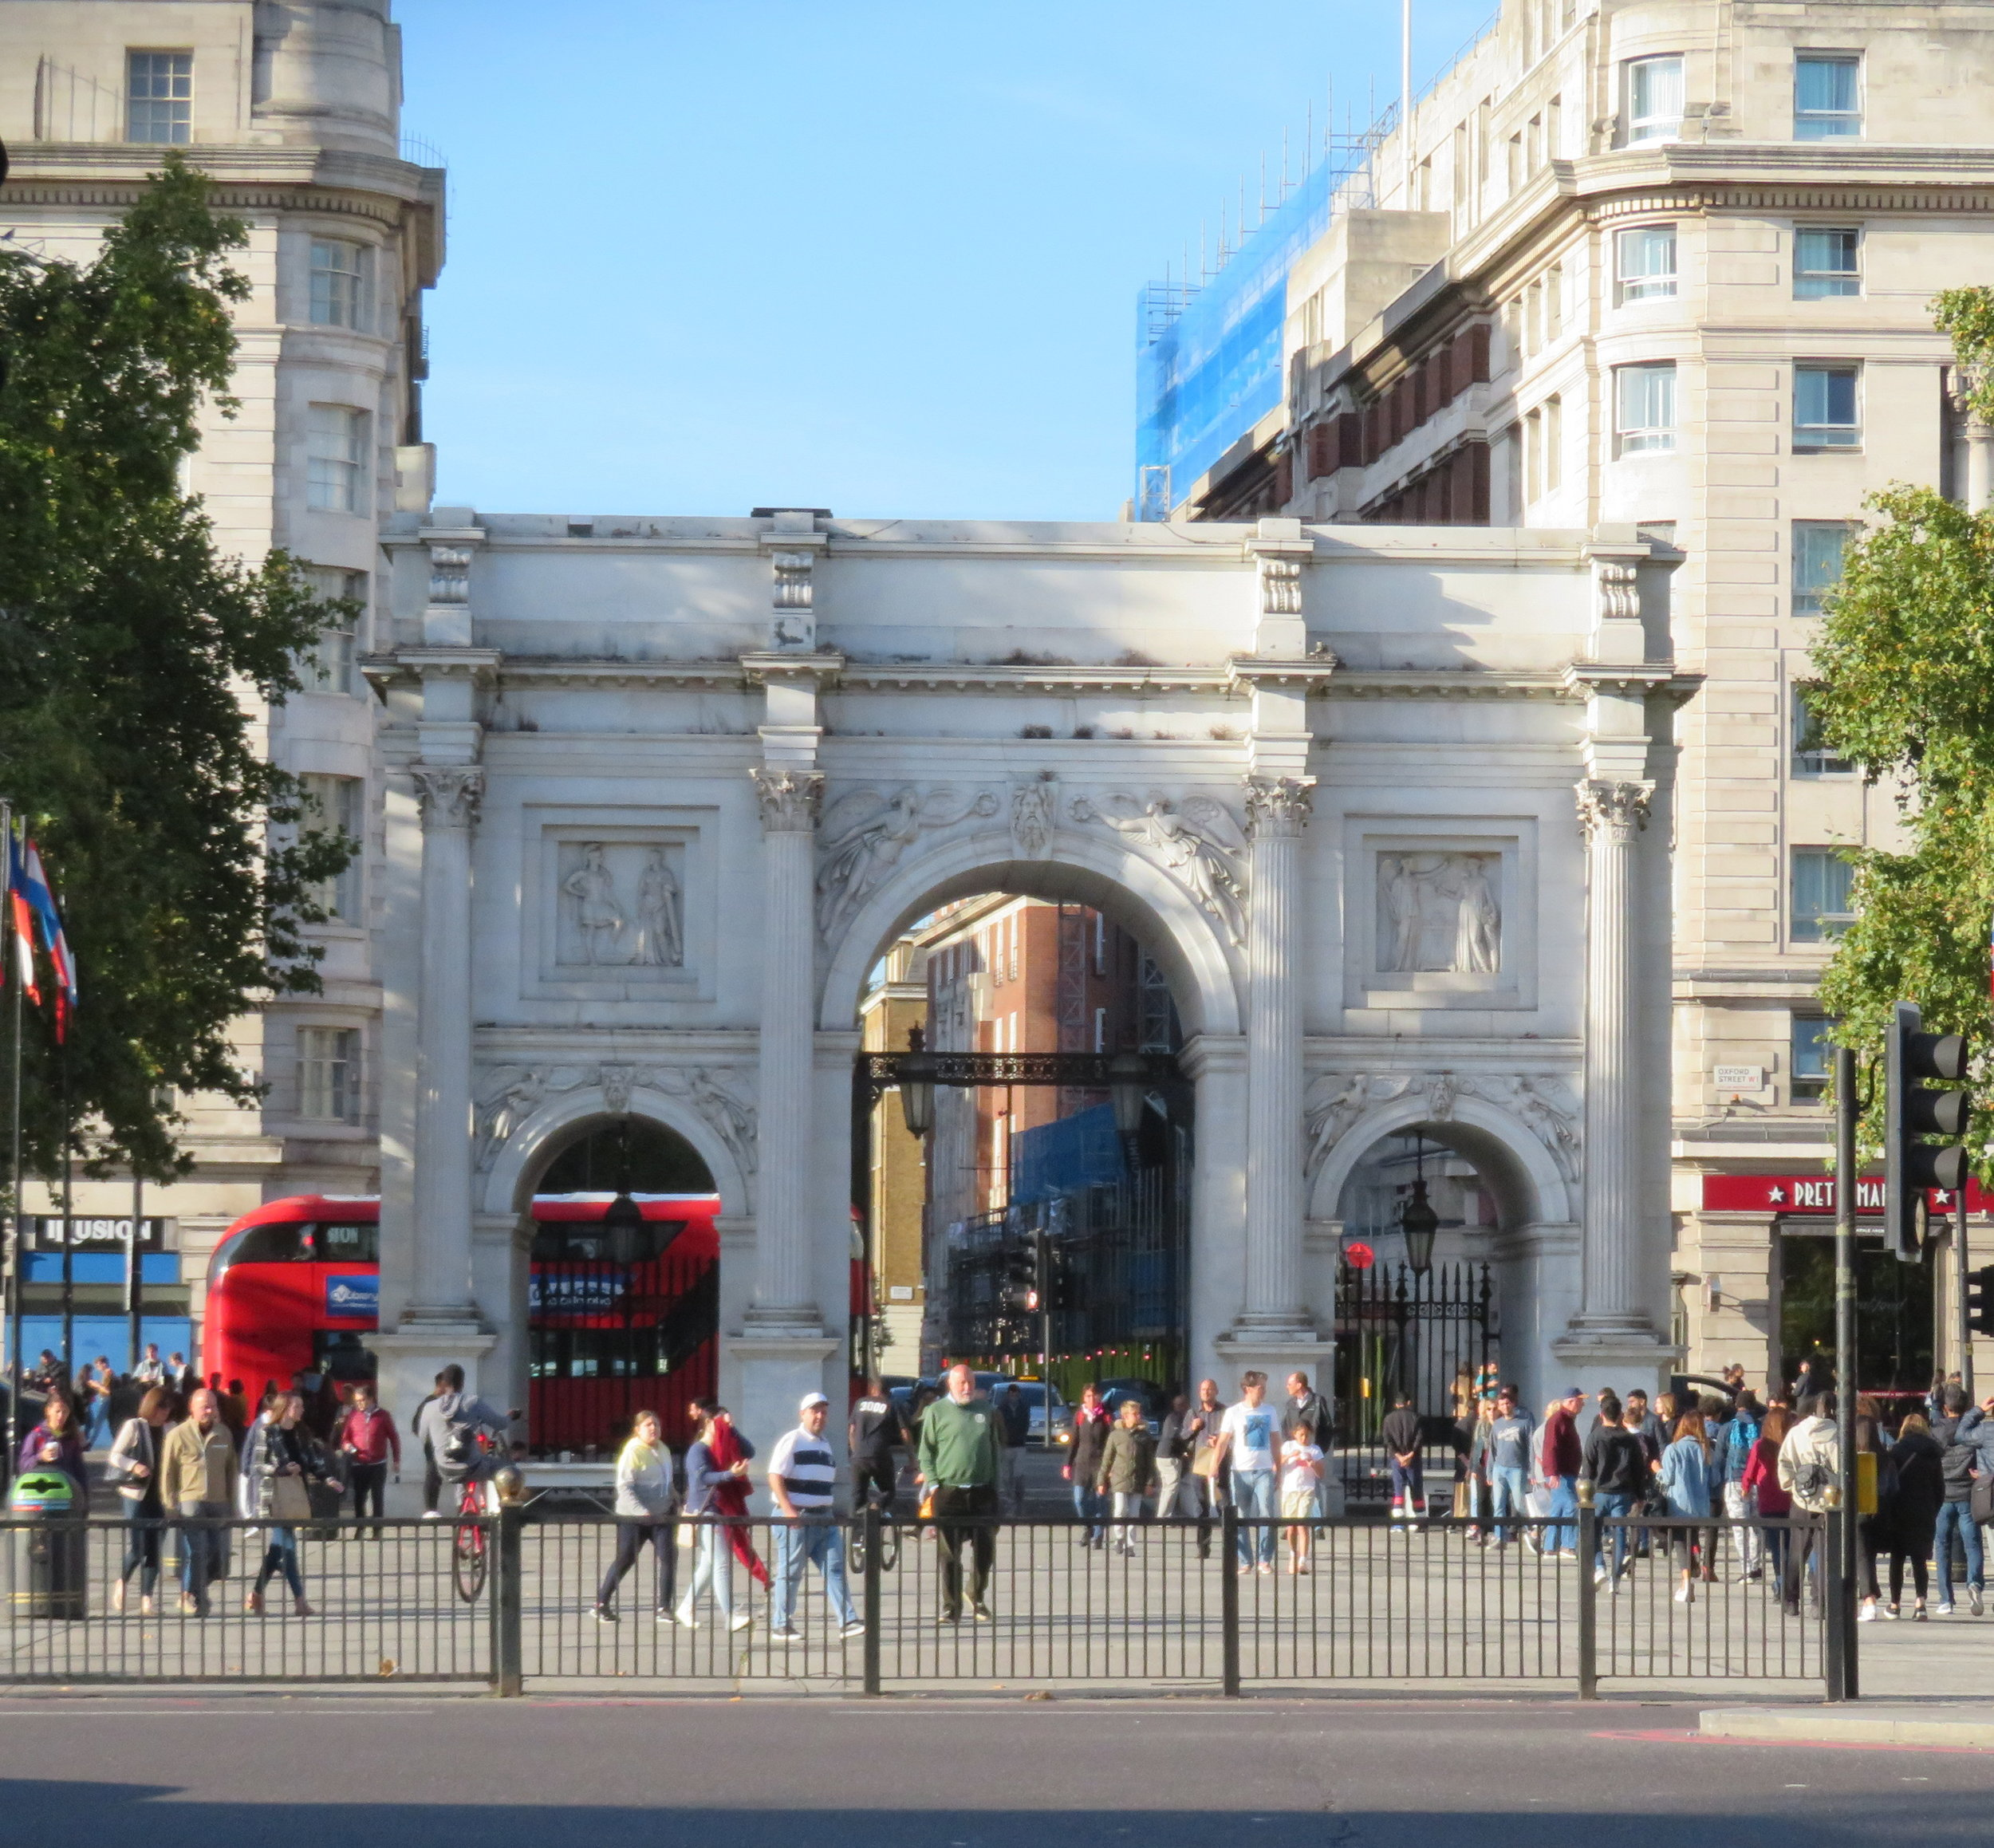 The Marble Arch, a triumphal arch which, although stately, seems out of place in this traffic island.